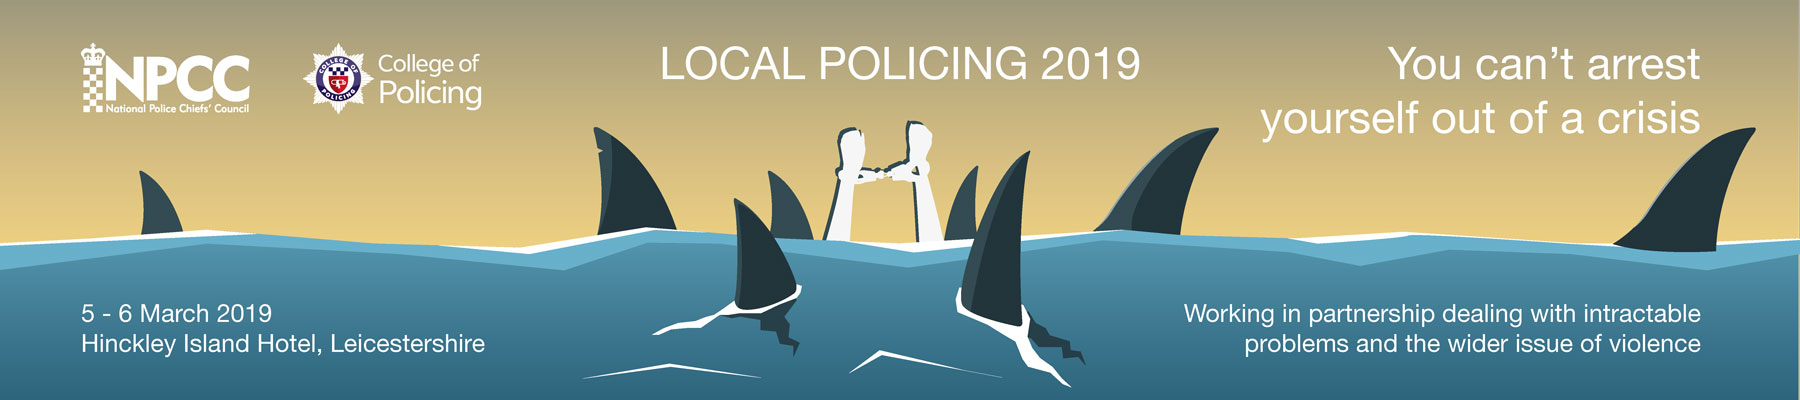 The 2019 Local Policing Conference